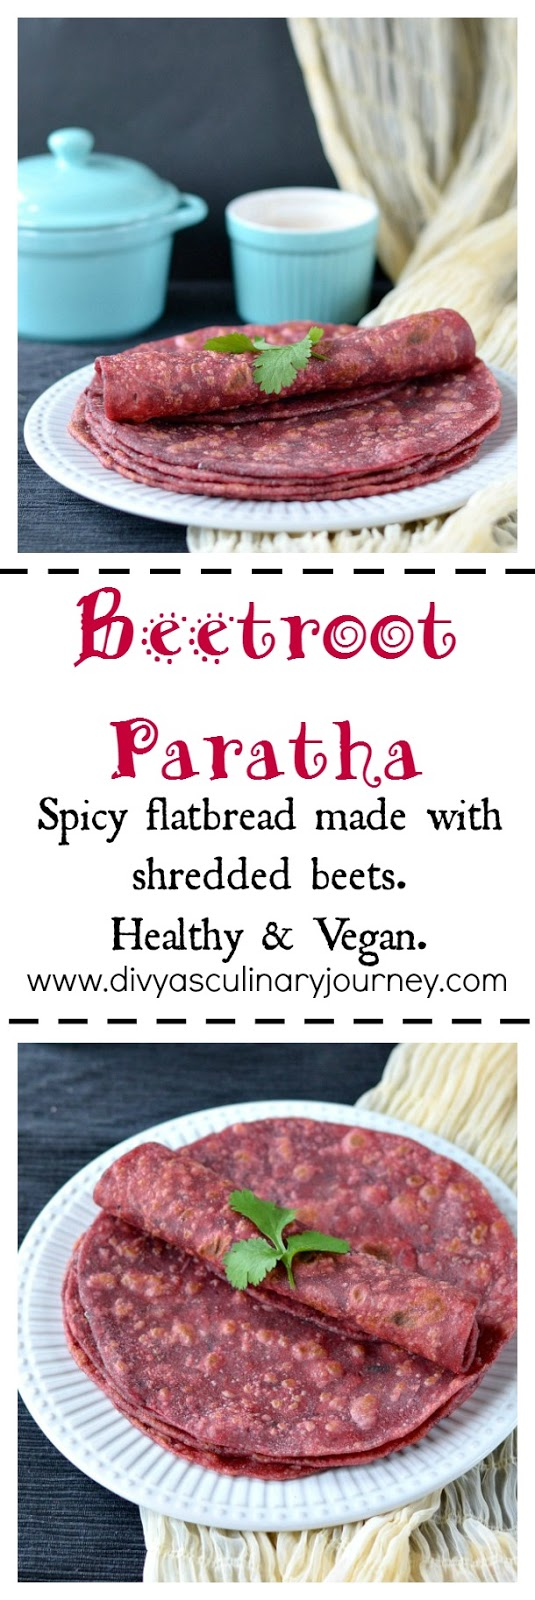 beetroot paratha, healthy recipes using beets, kid friendly recipes